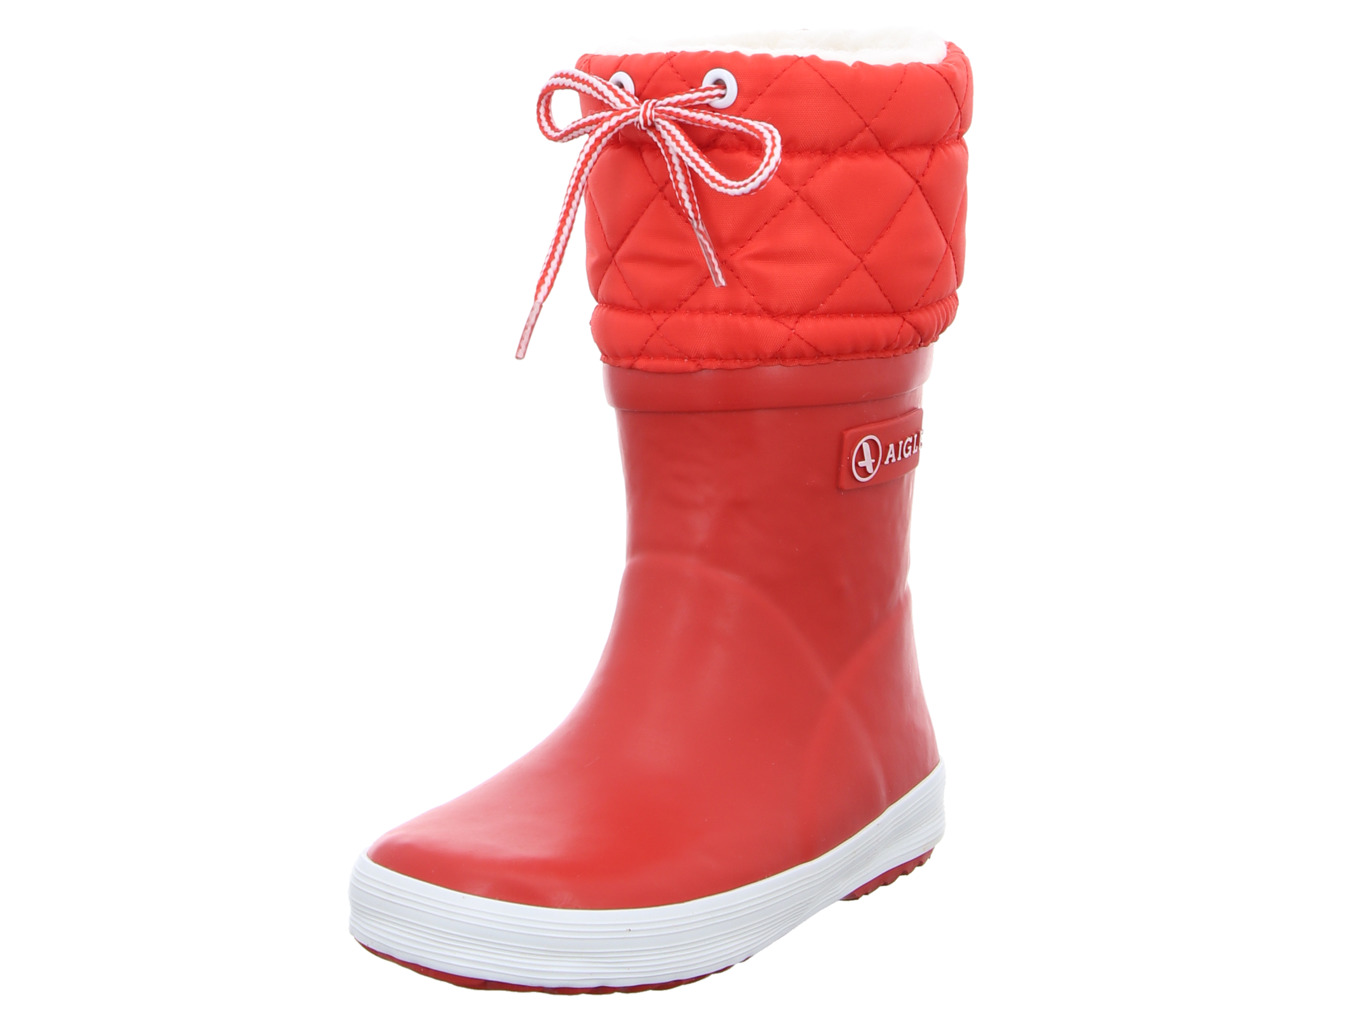 aigle_giboulee_rot_24538_rouge_1119